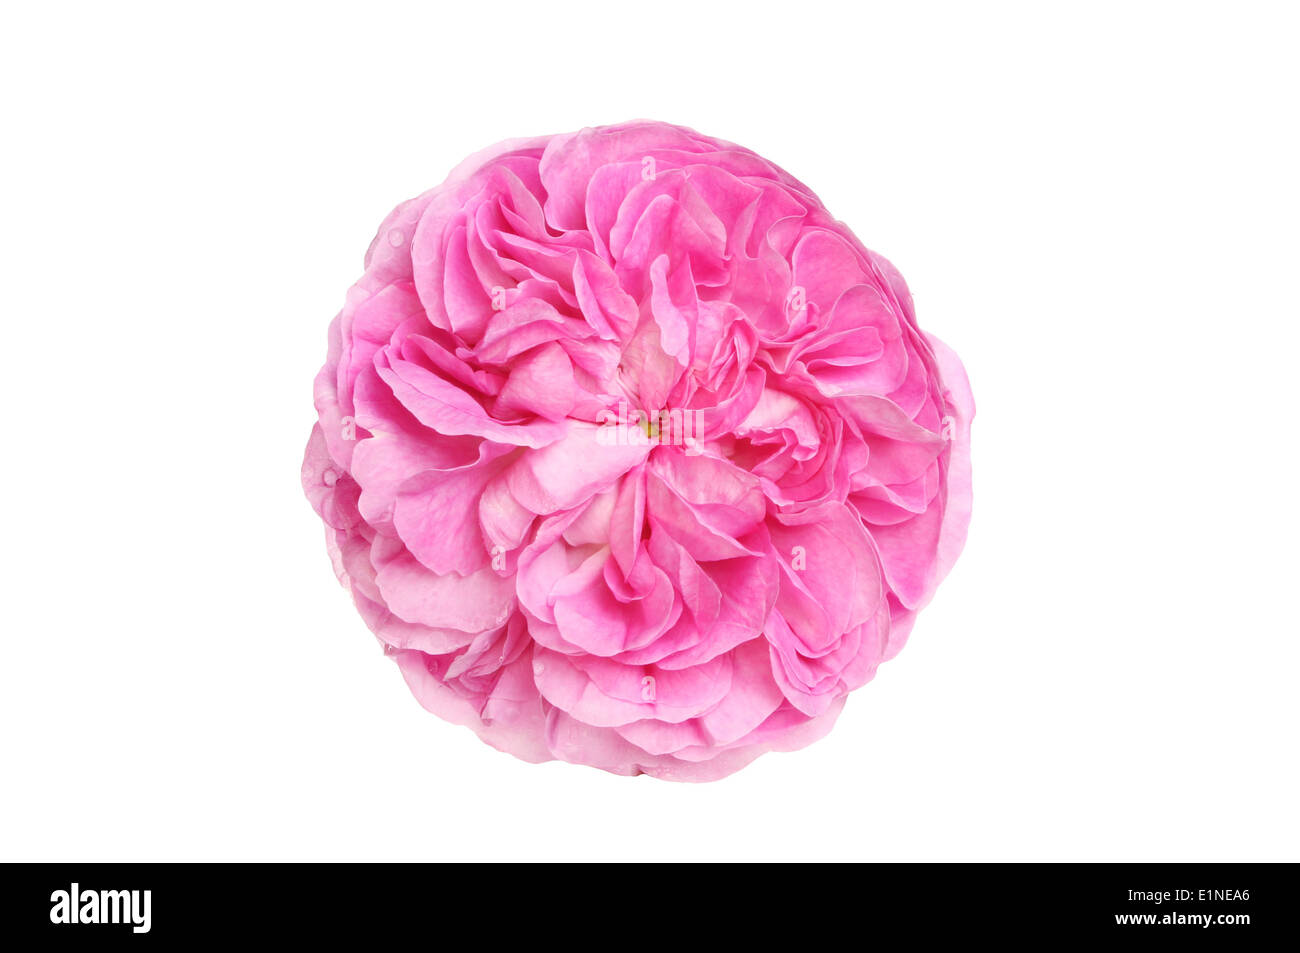 Round flowerhead of a magenta rose isolated against white Stock Photo